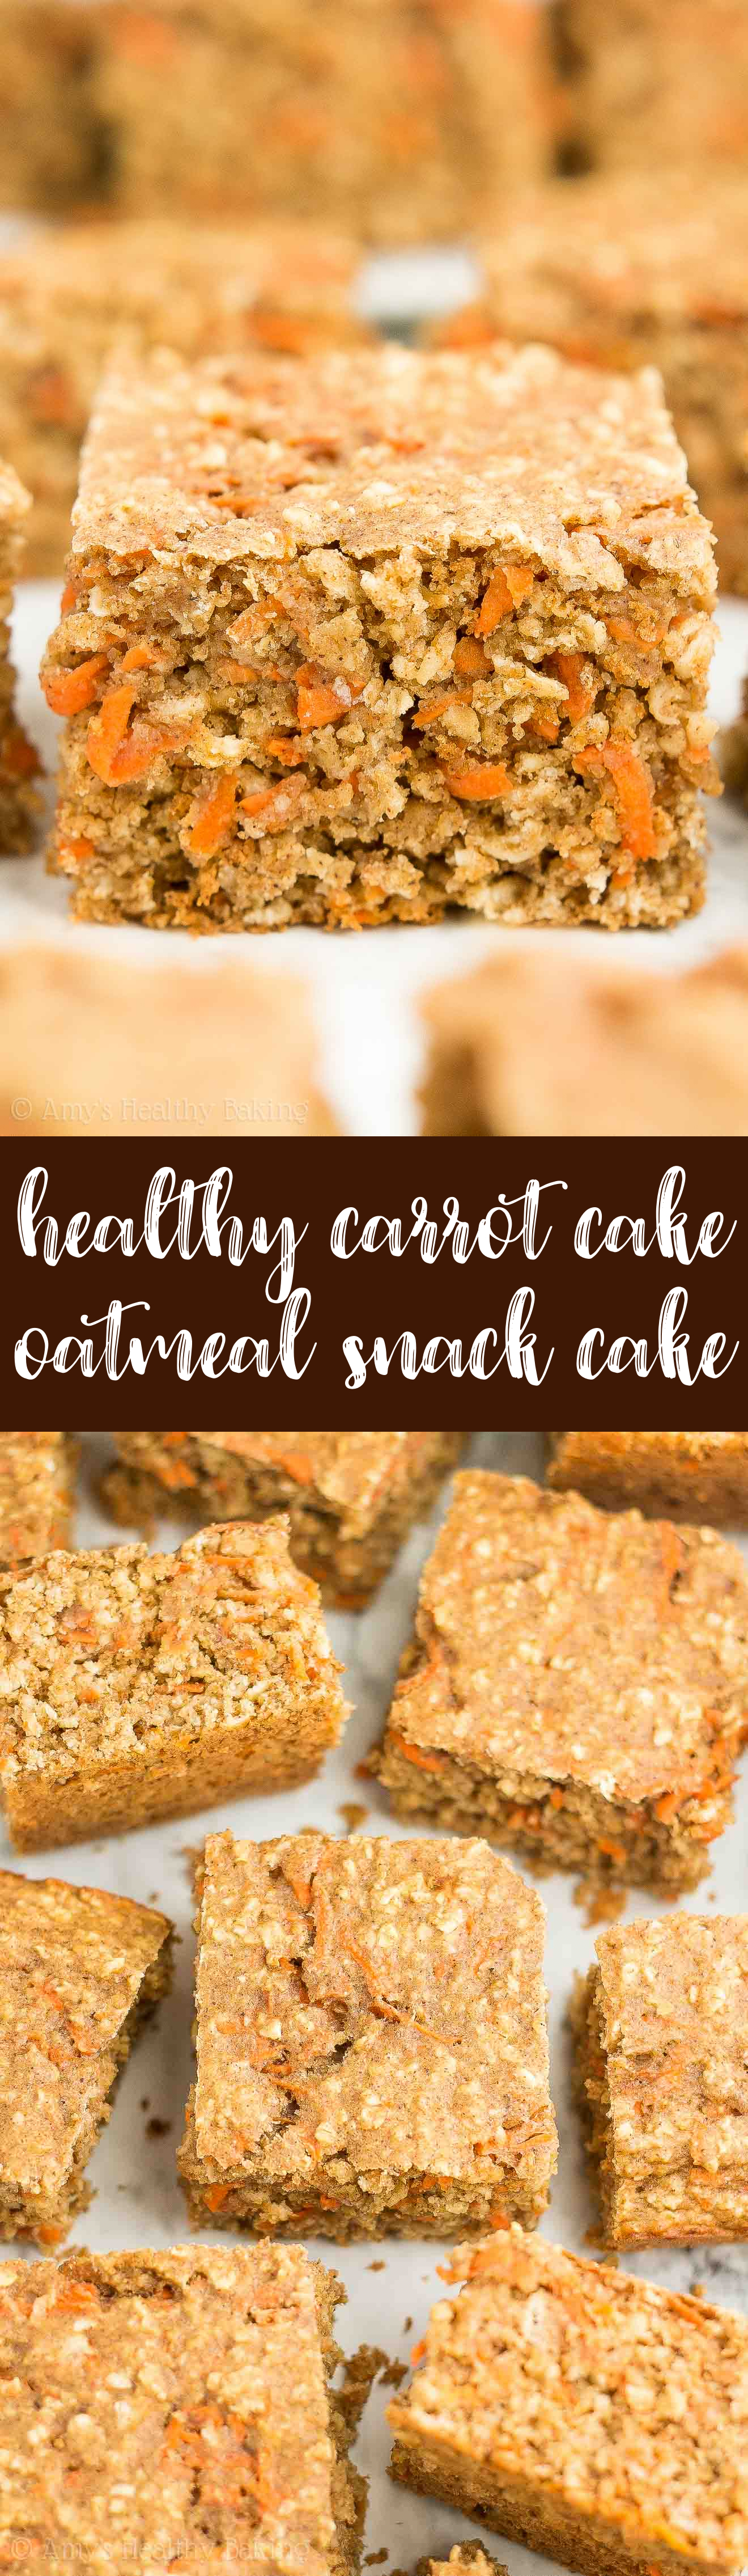 Low-Calorie Healthy Carrot Cake Oatmeal Snack Cake